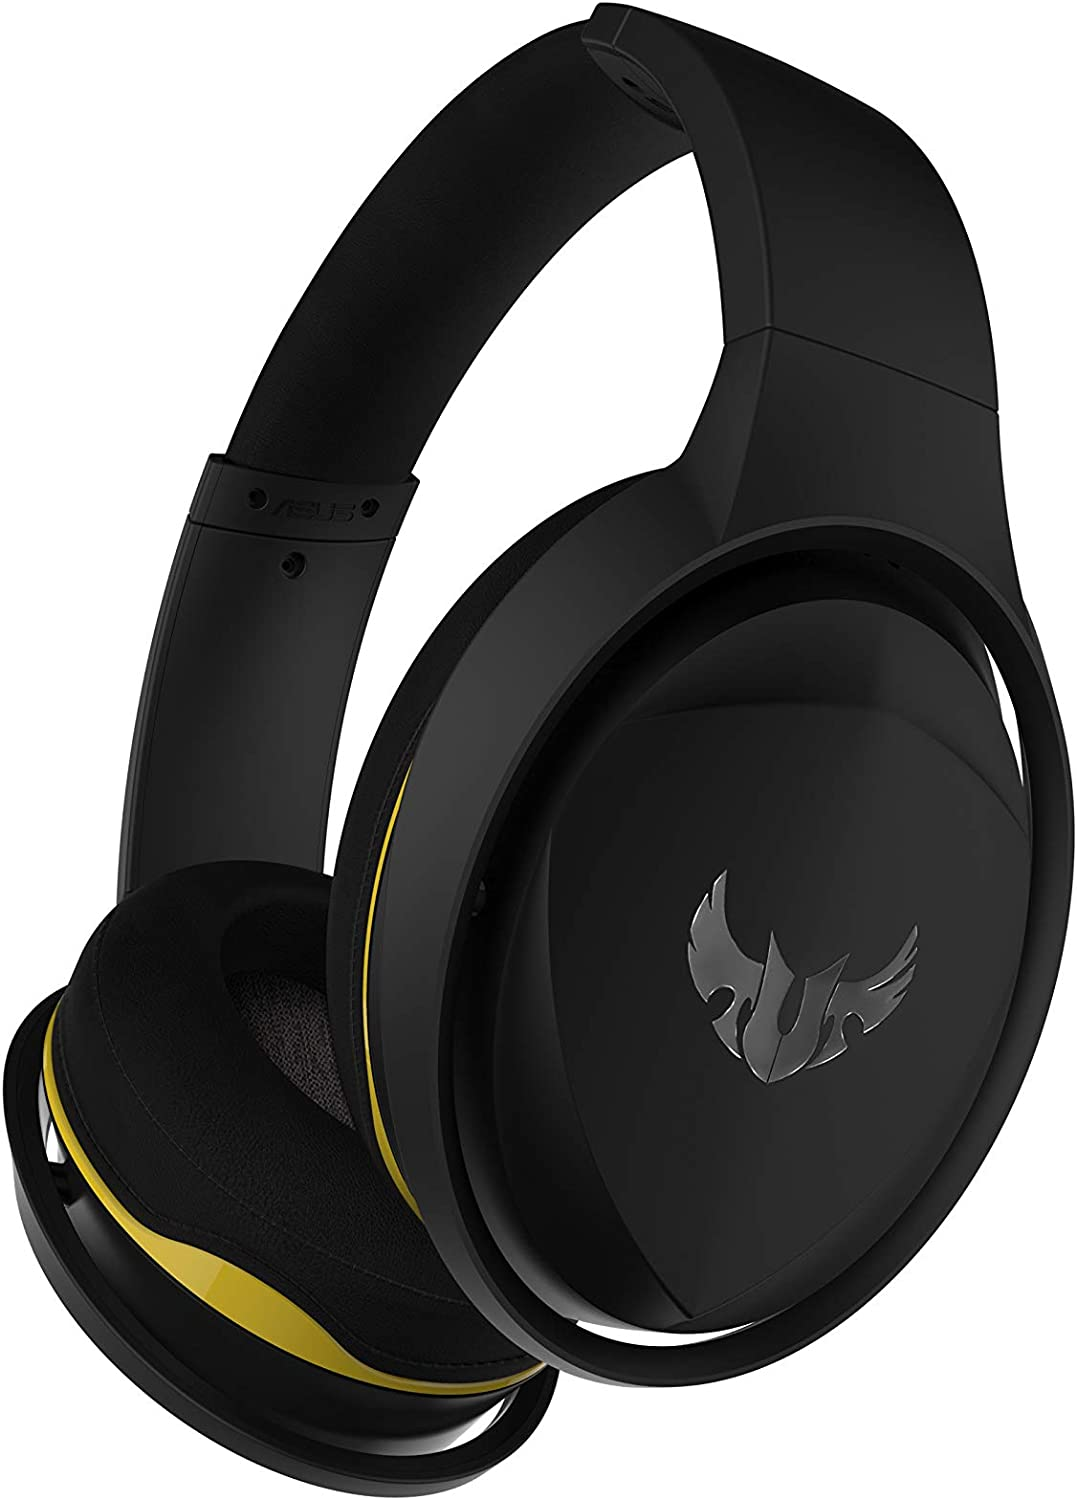 ASUS TUF Gaming H5 - Auriculares, Compatible con PC-PS4 -Mac-Xbox One -Nintendo Switch y Smartphones, Sonido 7.1 Virtual, Dos micrófonos, USB 2.0: Asustek: Amazon.es: Informática